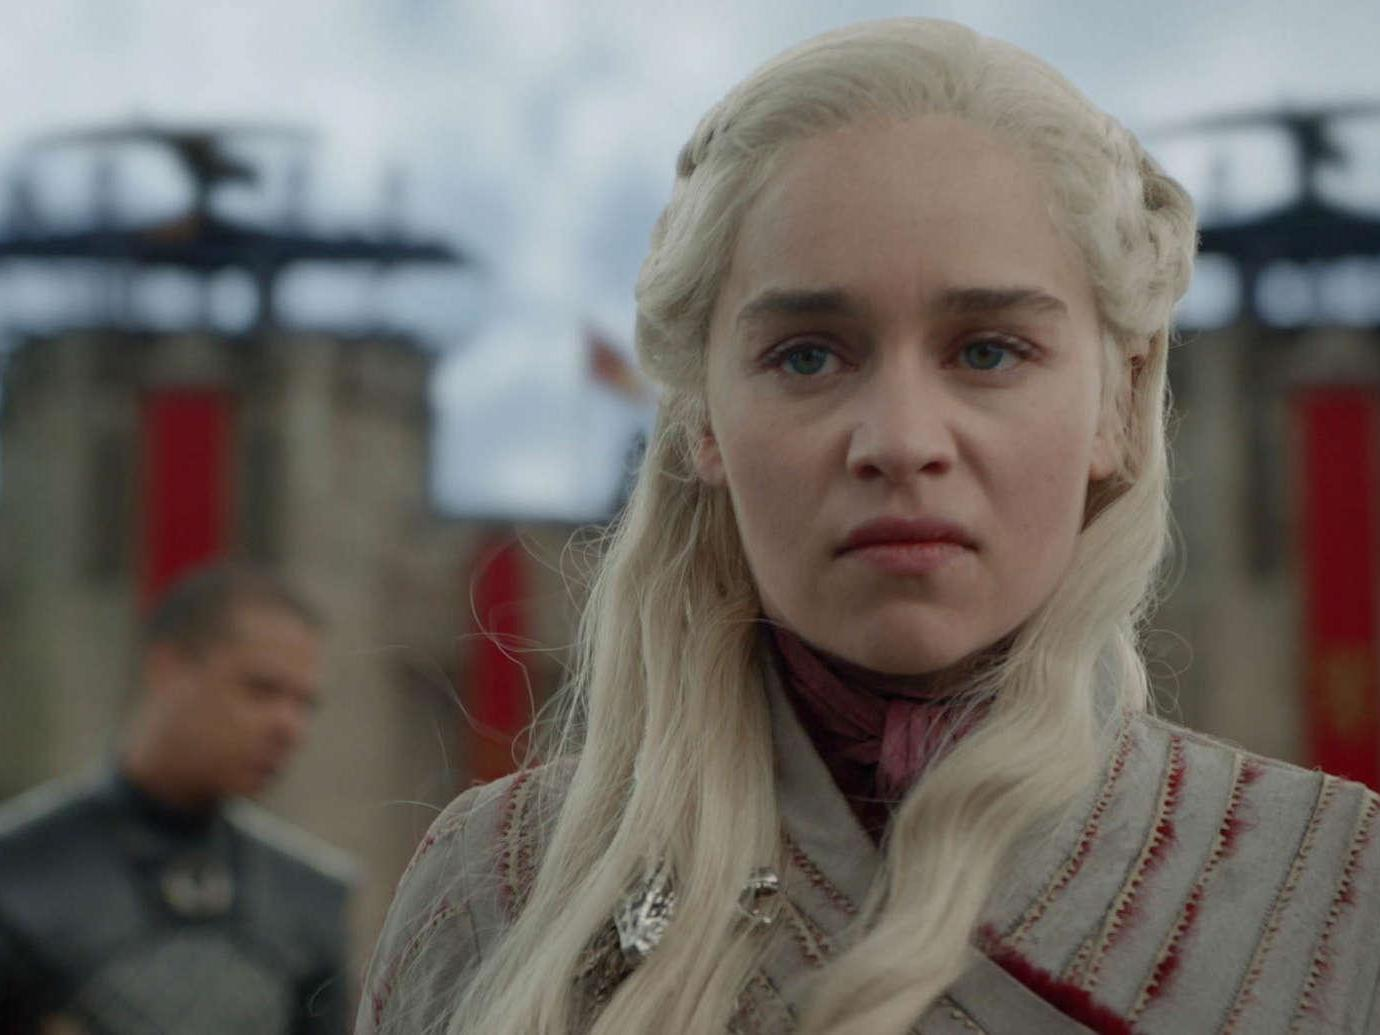 Game of Thrones leak: Season 8 episode 5 and 6 plots